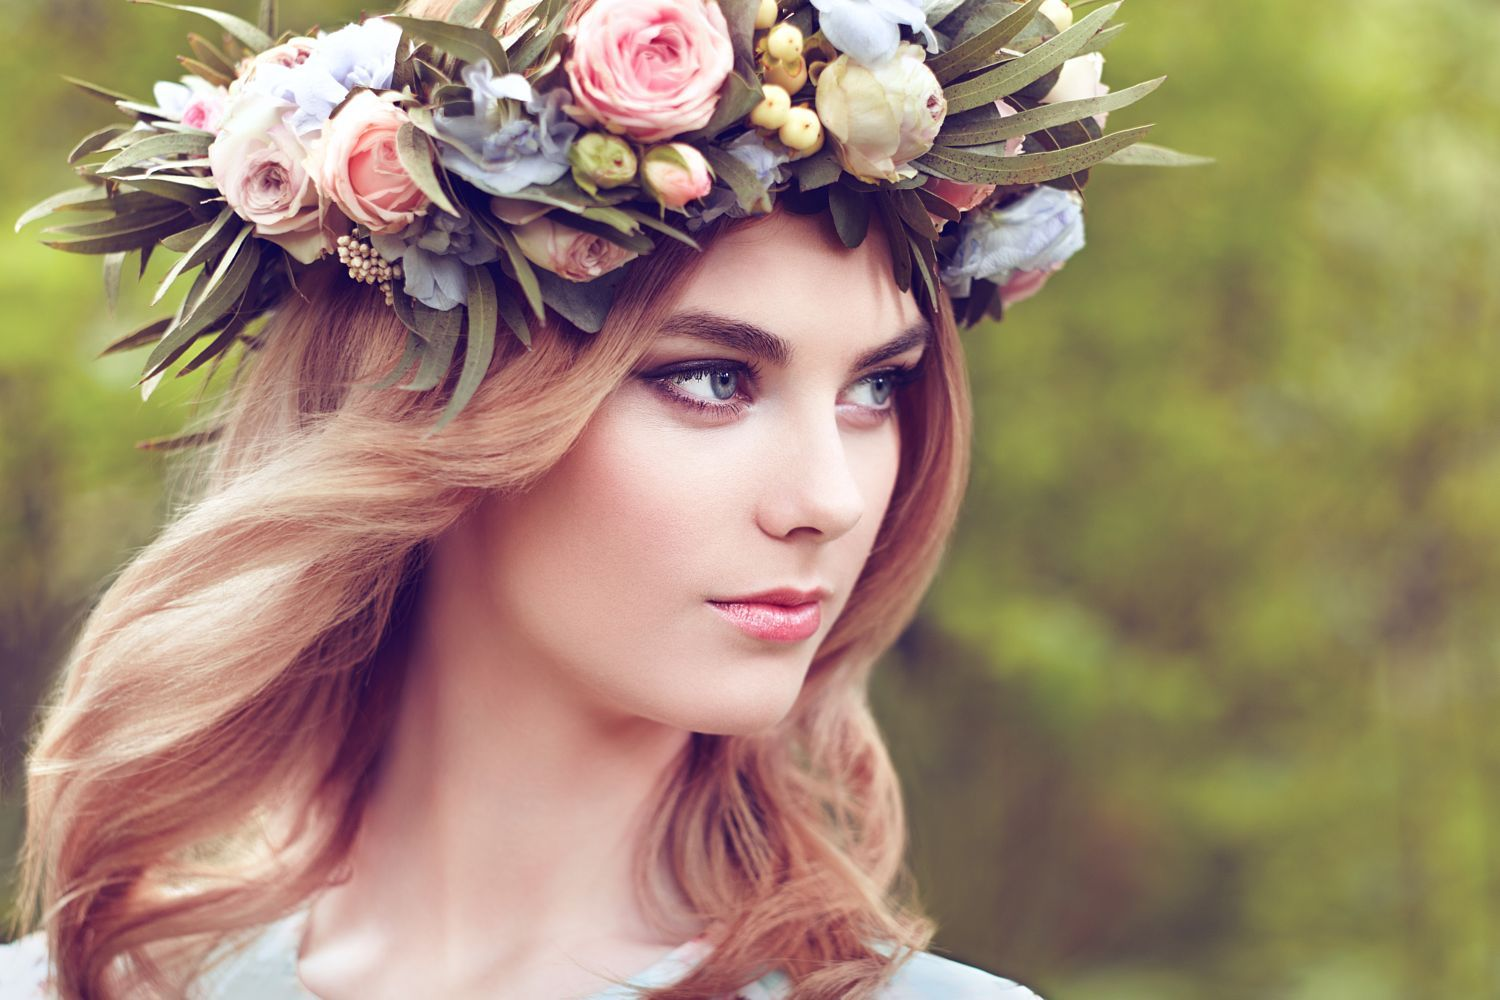 Beautiful blonde woman with flower wreath on her head by oleg gekman beautiful blonde woman with flower wreath on her head by oleg gekman on 500px izmirmasajfo Image collections